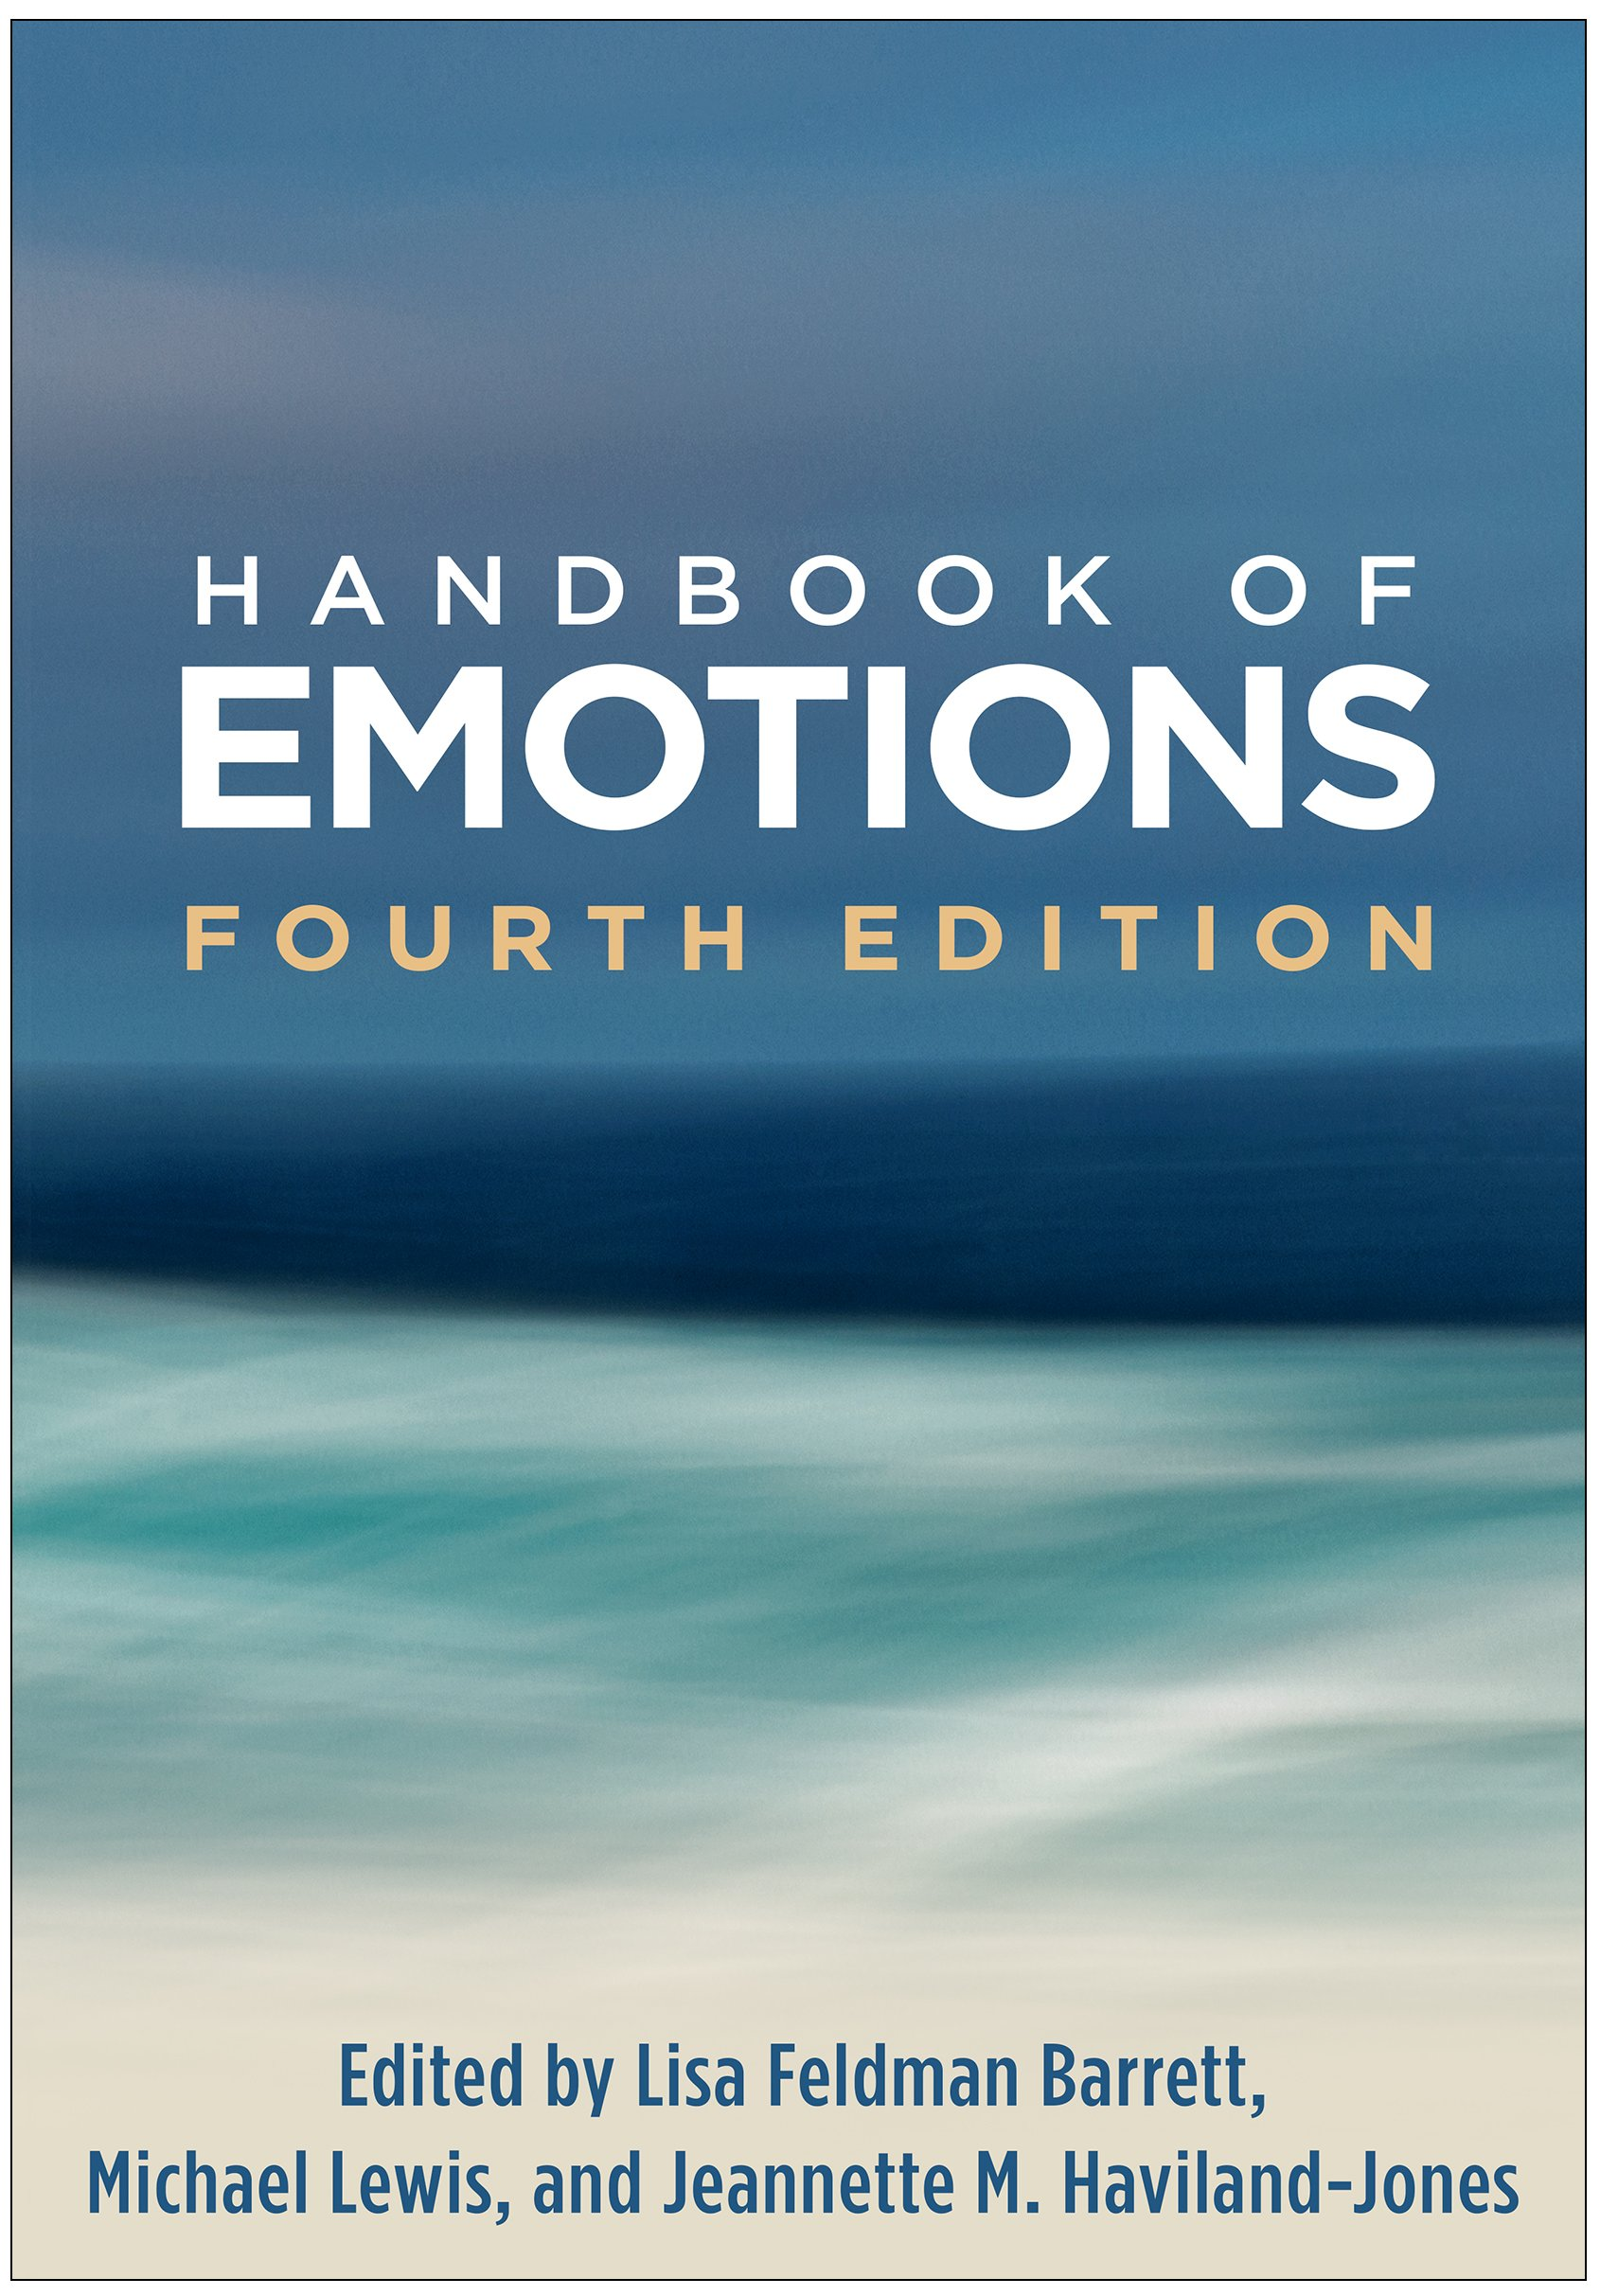 Image OfHandbook Of Emotions, Fourth Edition